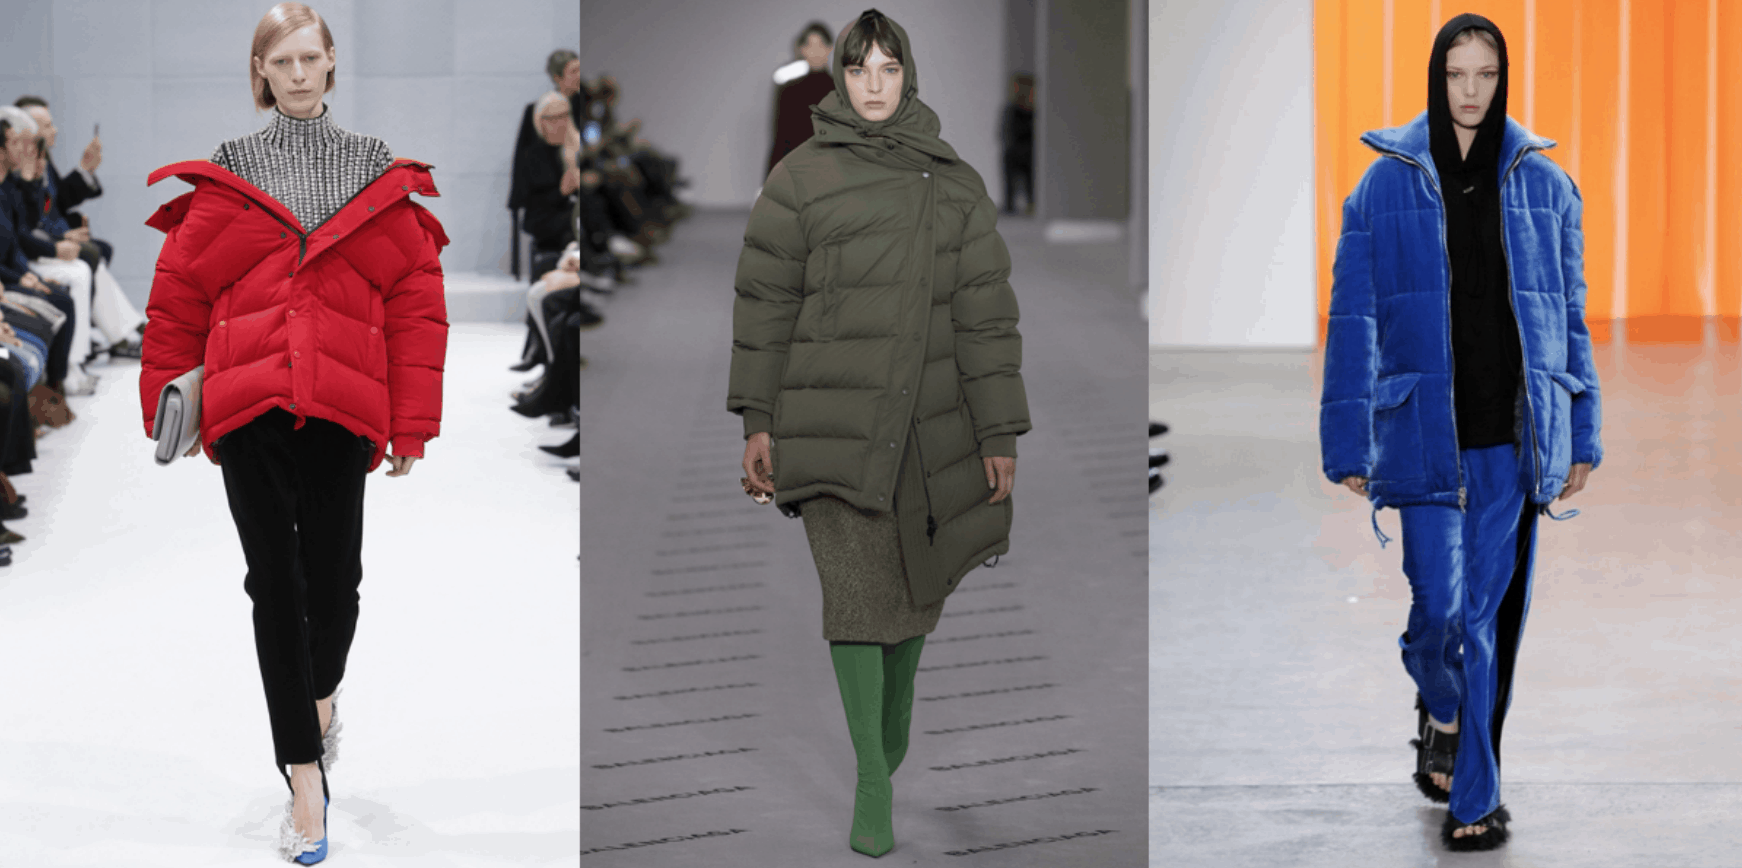 Winter outerwear trends for fall/winter 2017-18. Puffer jackets seen all over the runway from Balenciaga to Dion Lee.